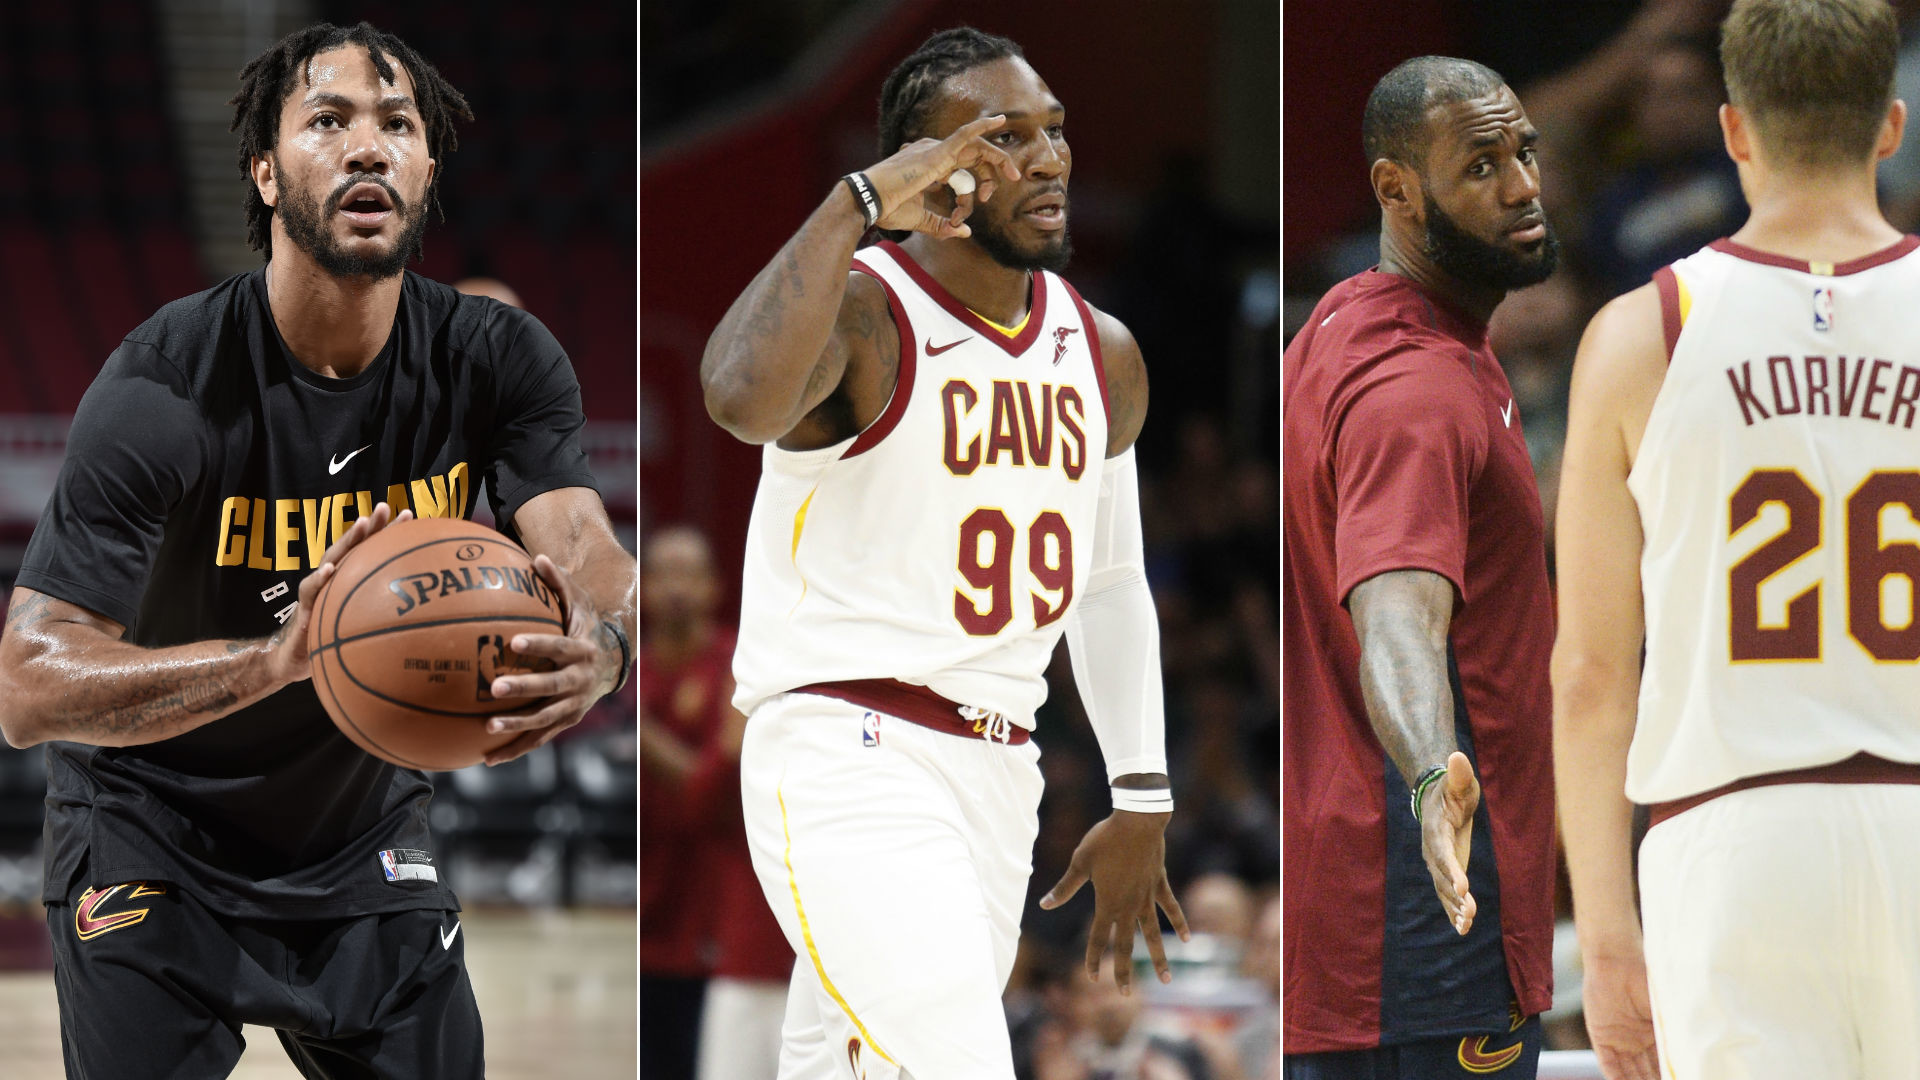 1920x1080 Cast of foes from LeBron James' past now run alongside him in Cleveland |  NBA.com